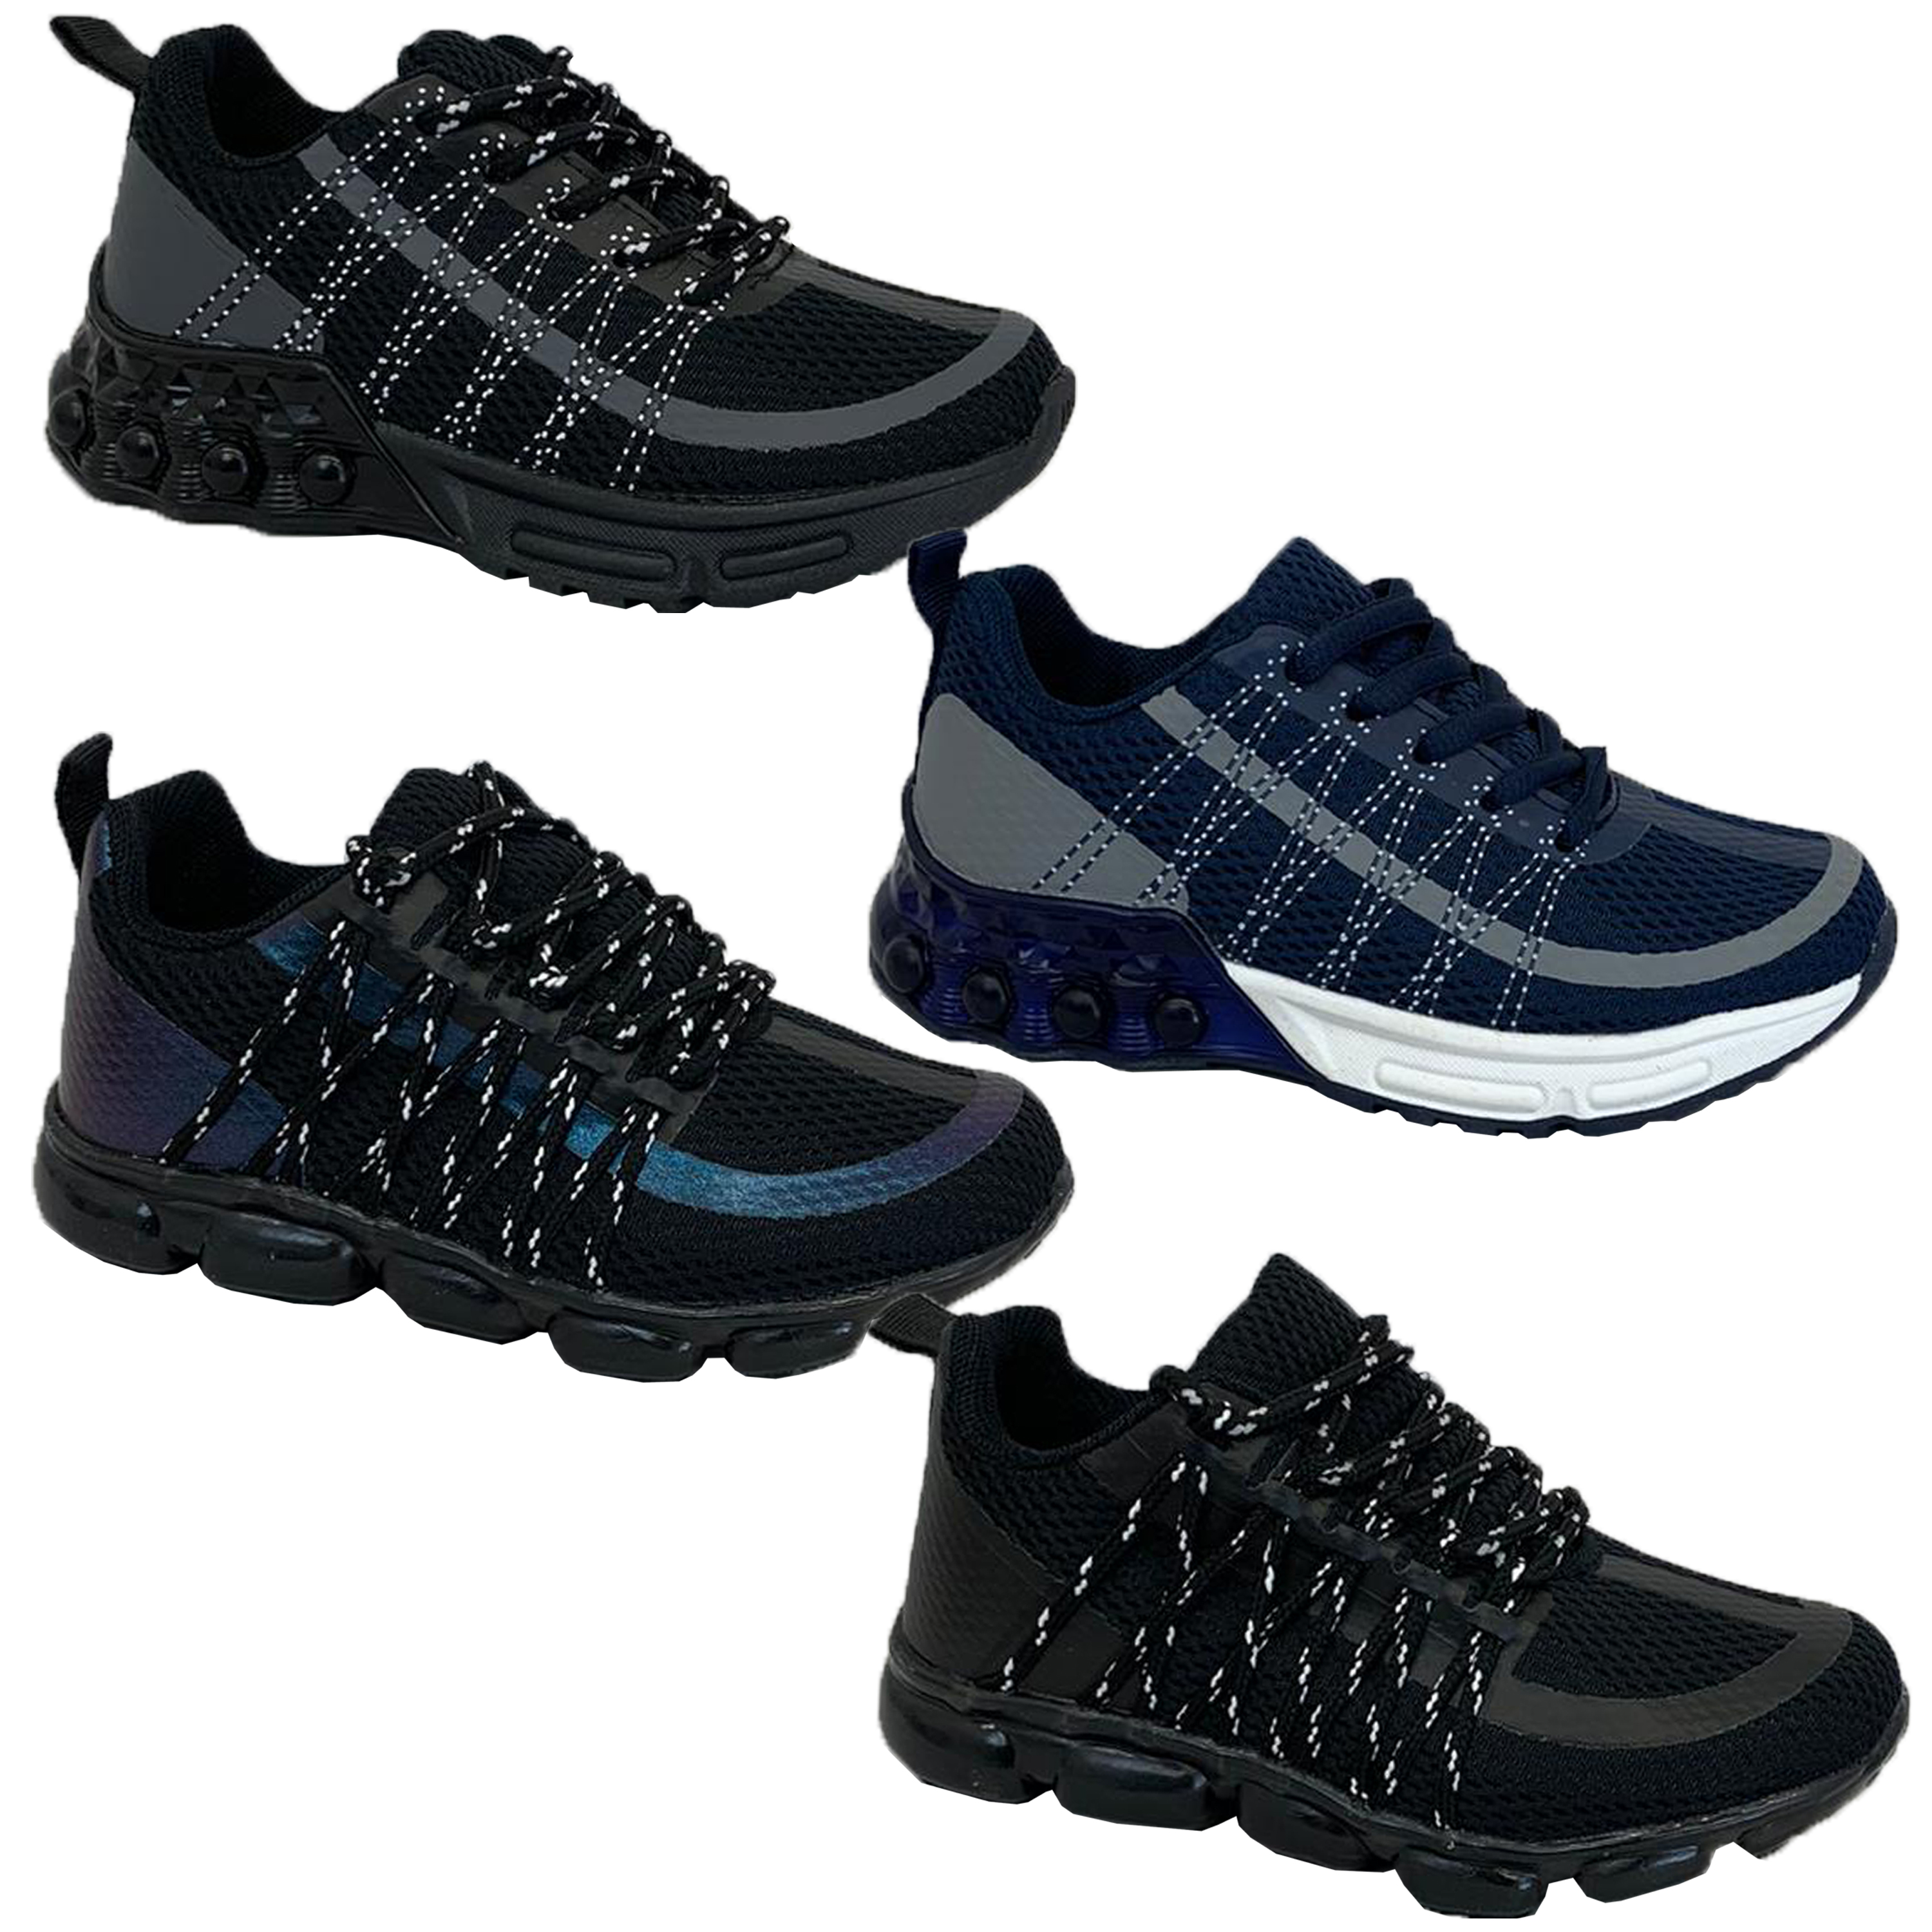 Boys-Bubble-Trainers-Kids-Joggers-Lace-Up-Shoes-Mesh-Sneakers-Sports-New-Fashion thumbnail 5